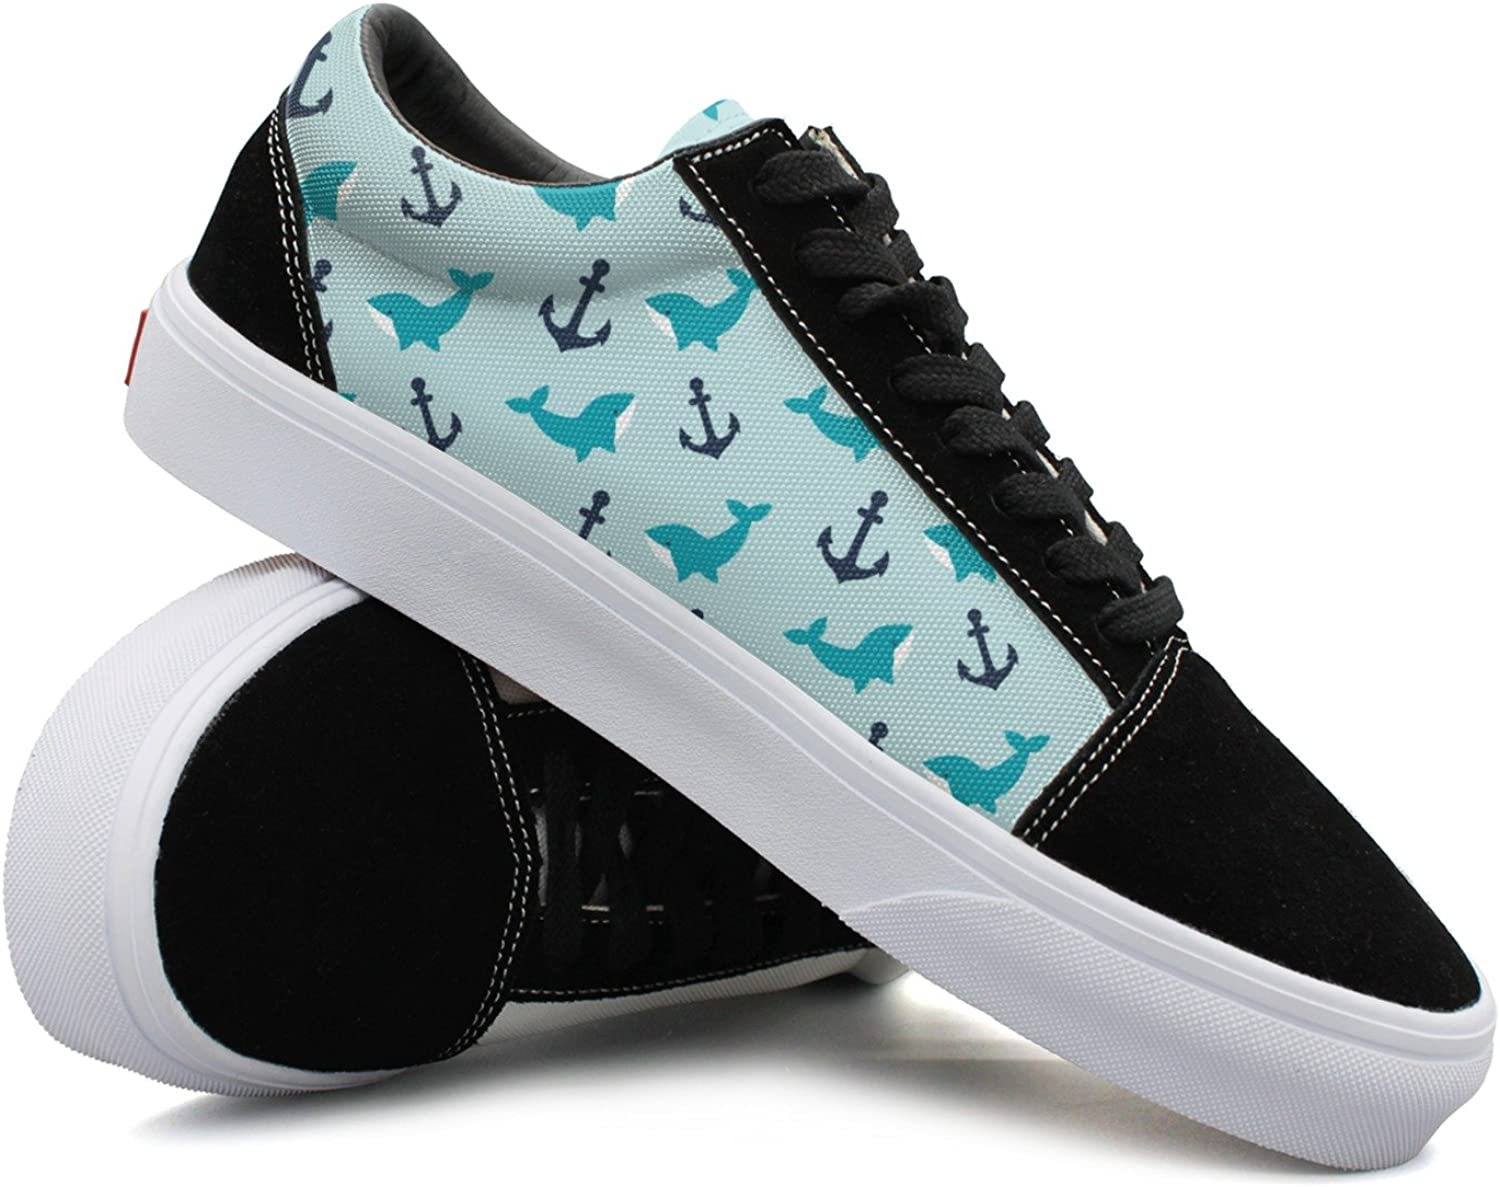 Womens Anchor Whale Pattern Fashionable Canvas shoes